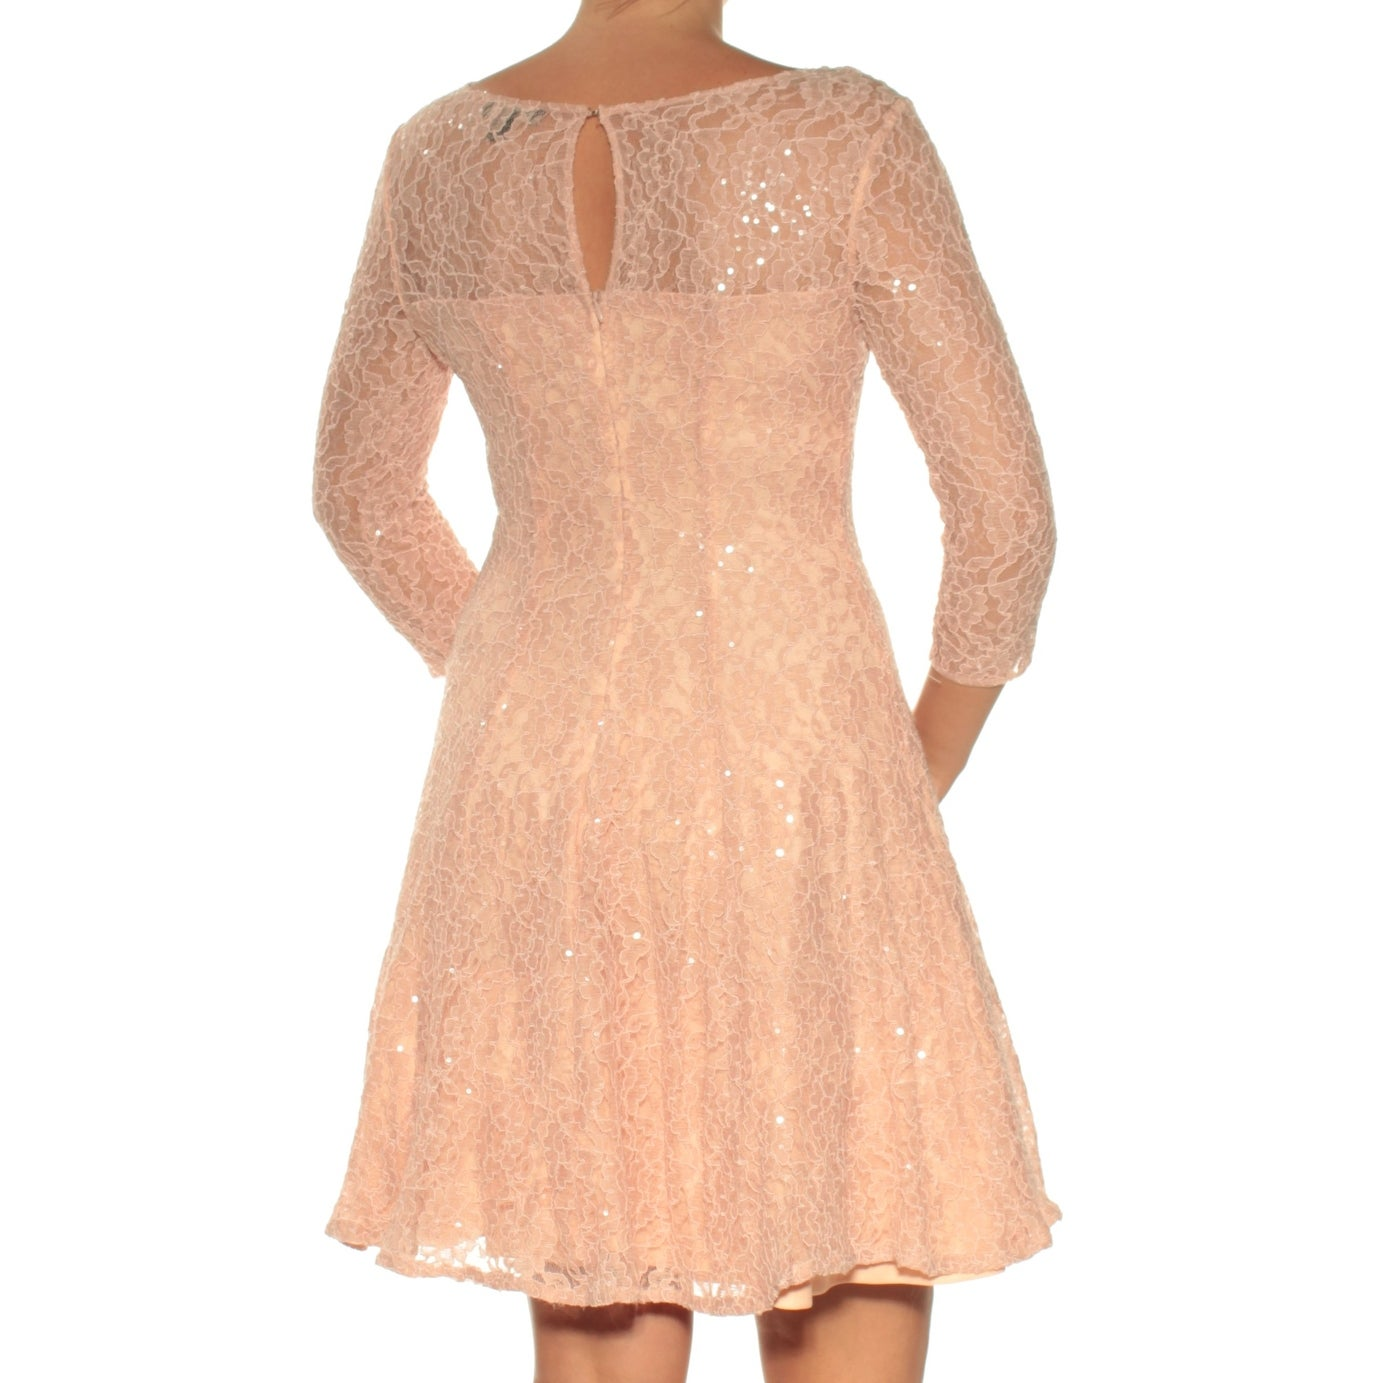 cf128f4d34 Shop SLNY Womens Pink Lace Sequined 3 4 Sleeve Cowl Neck Above The Knee Fit  + Flare Formal Dress Size  6 - Free Shipping On Orders Over  45 -  Overstock.com ...